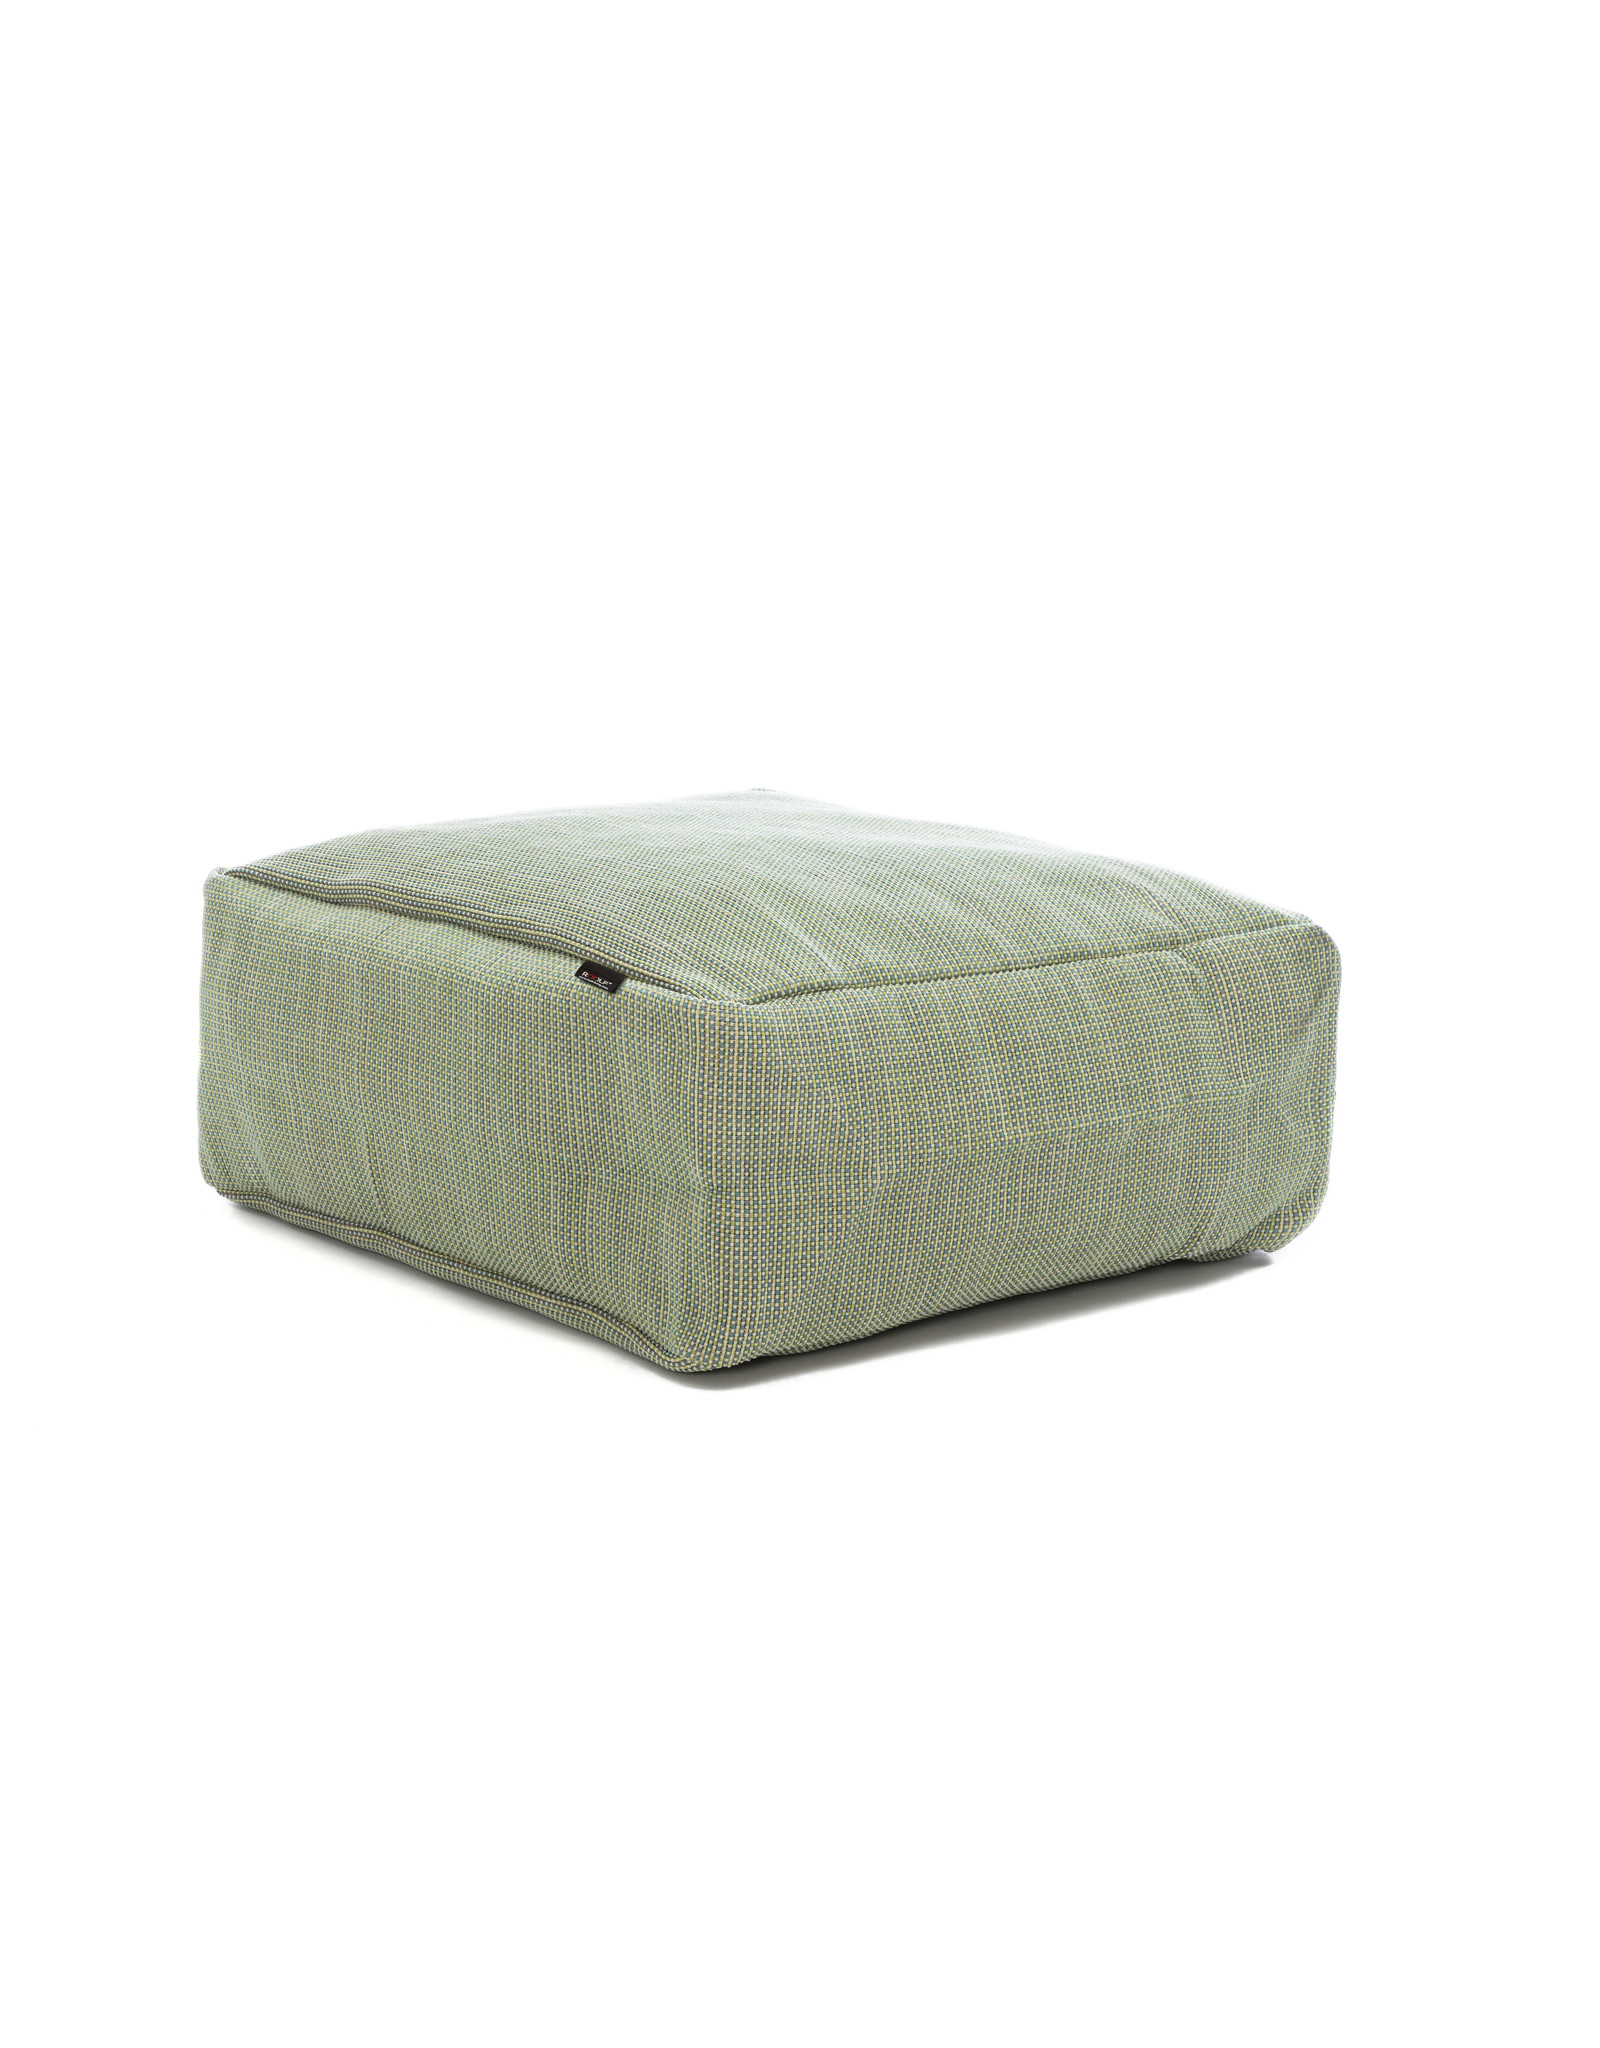 ROOLF LIVING DOTTY S - LIME